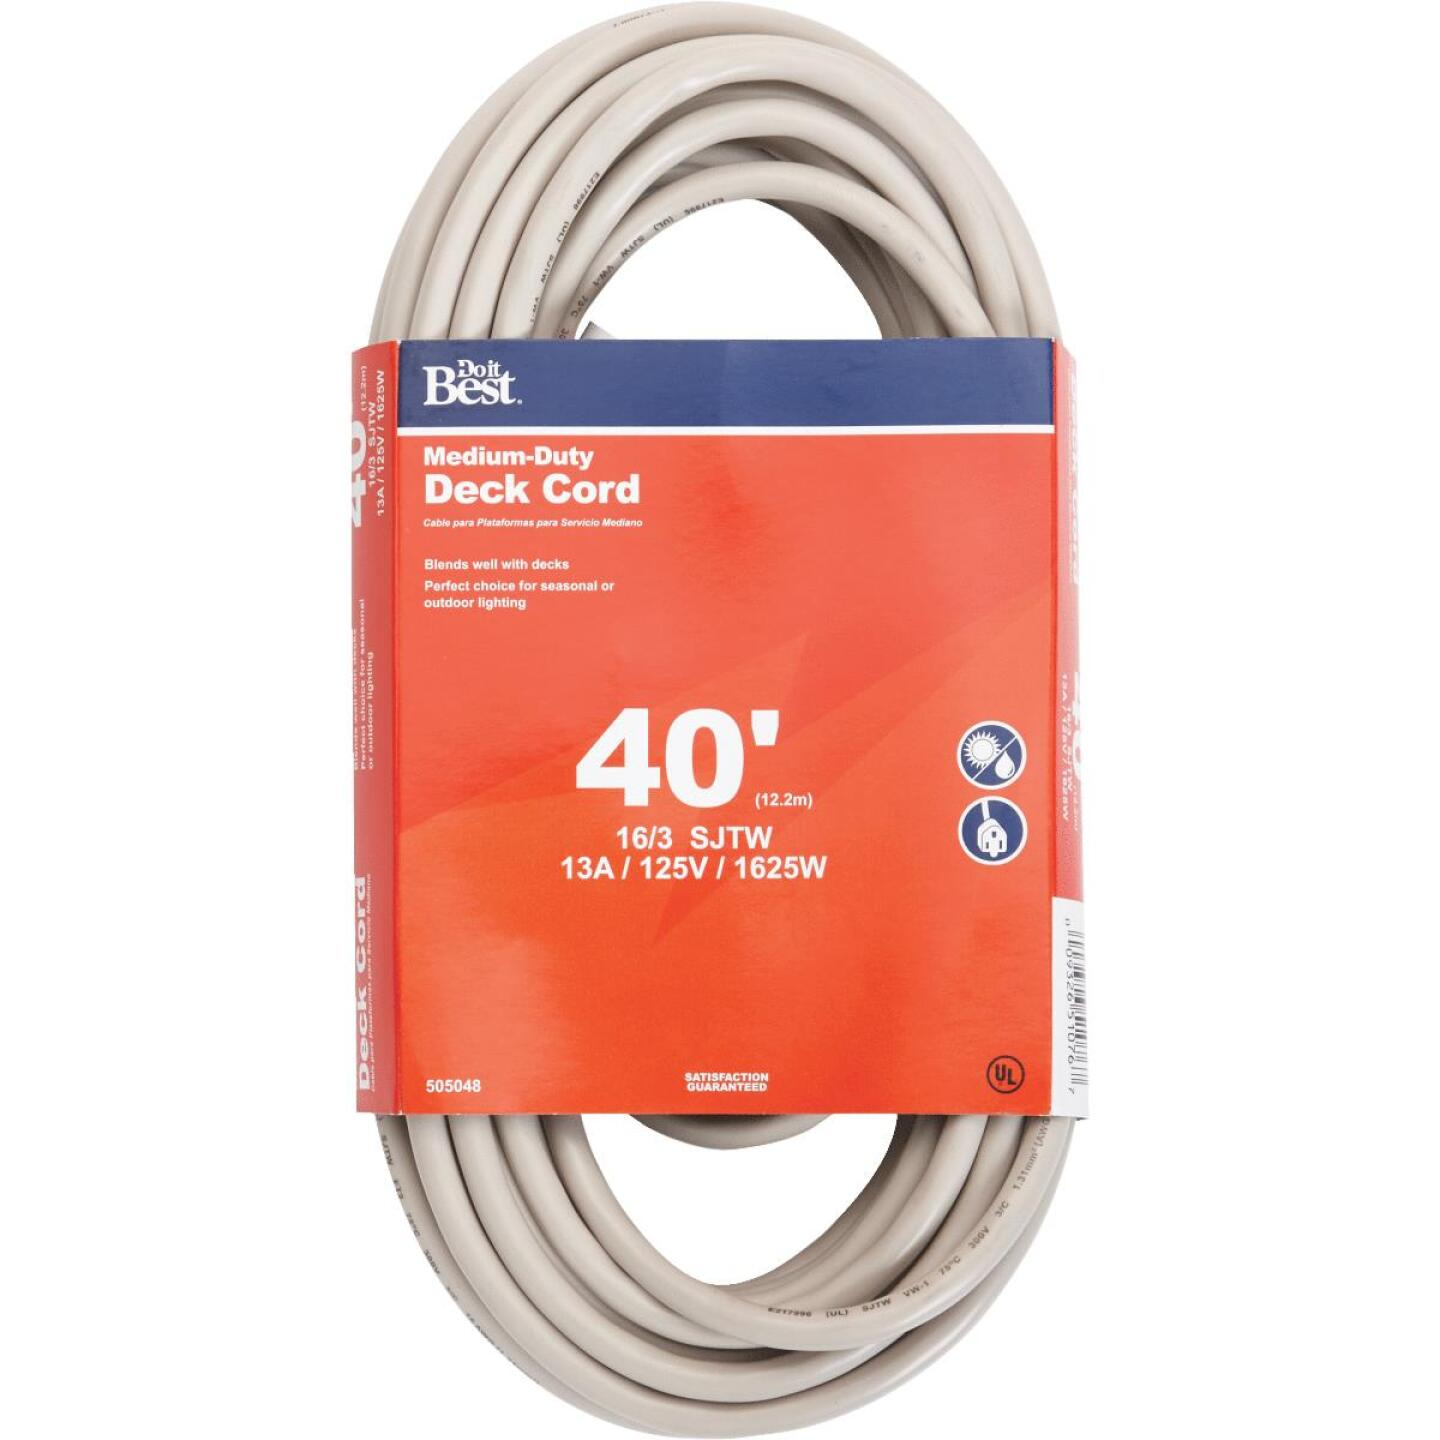 Do it Best 40 Ft. 16/3 Medium-Duty Tan Deck Extension Cord Image 1